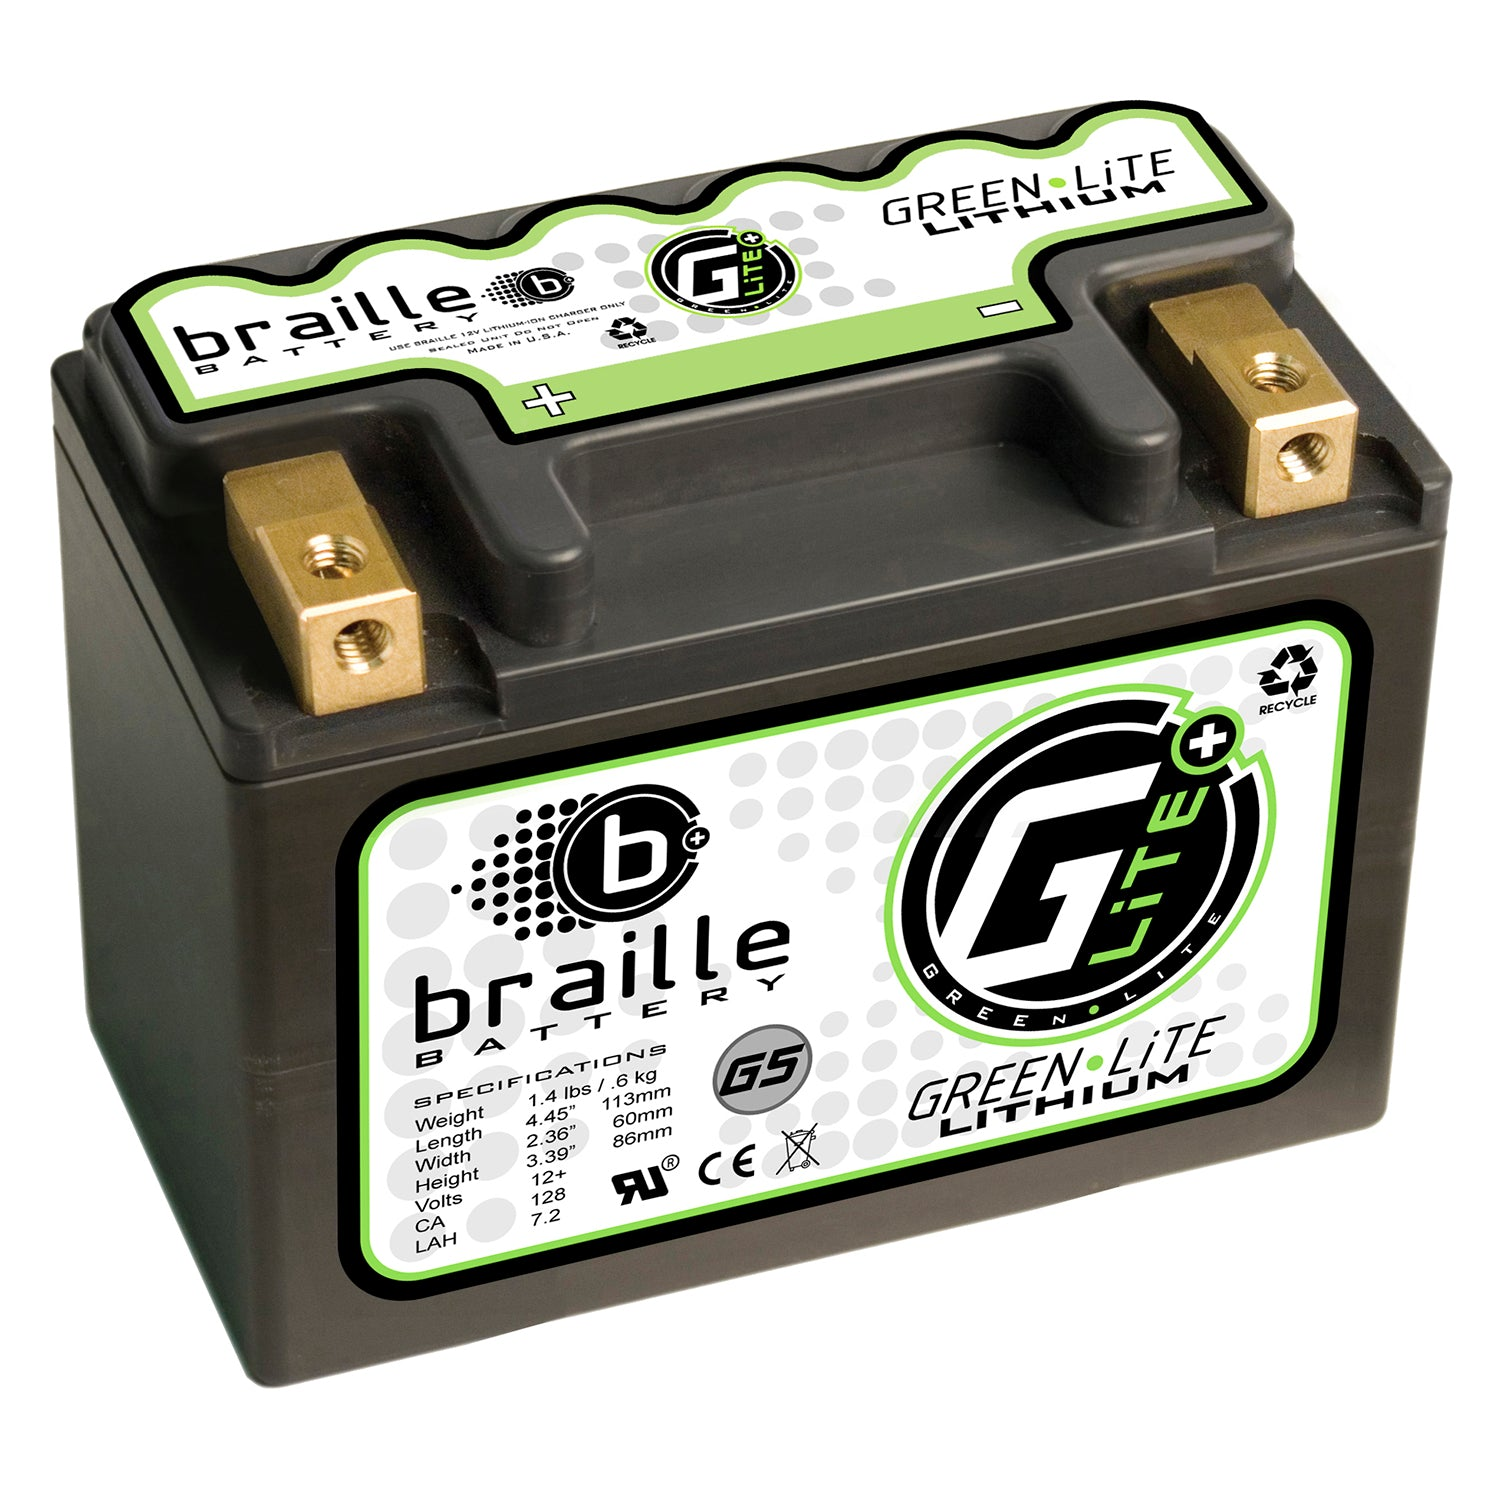 G5S - GreenLite lithium battery